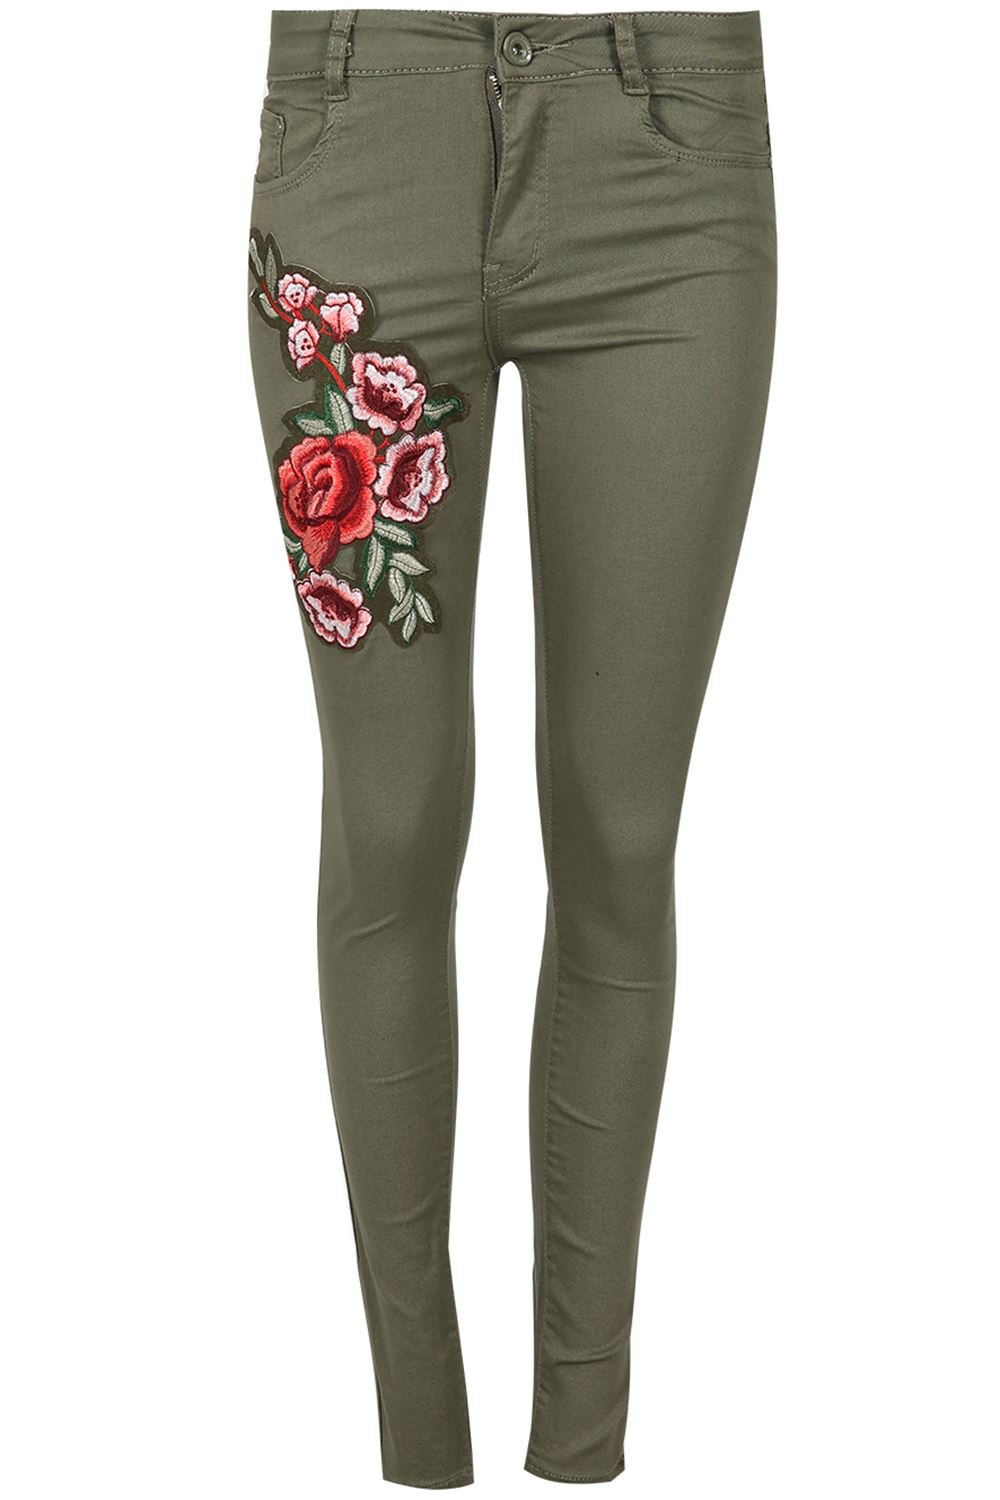 Women Ladies Flower Floral Red Rose Embroidered Skinny Trousers Pant Denim Jeans | EBay